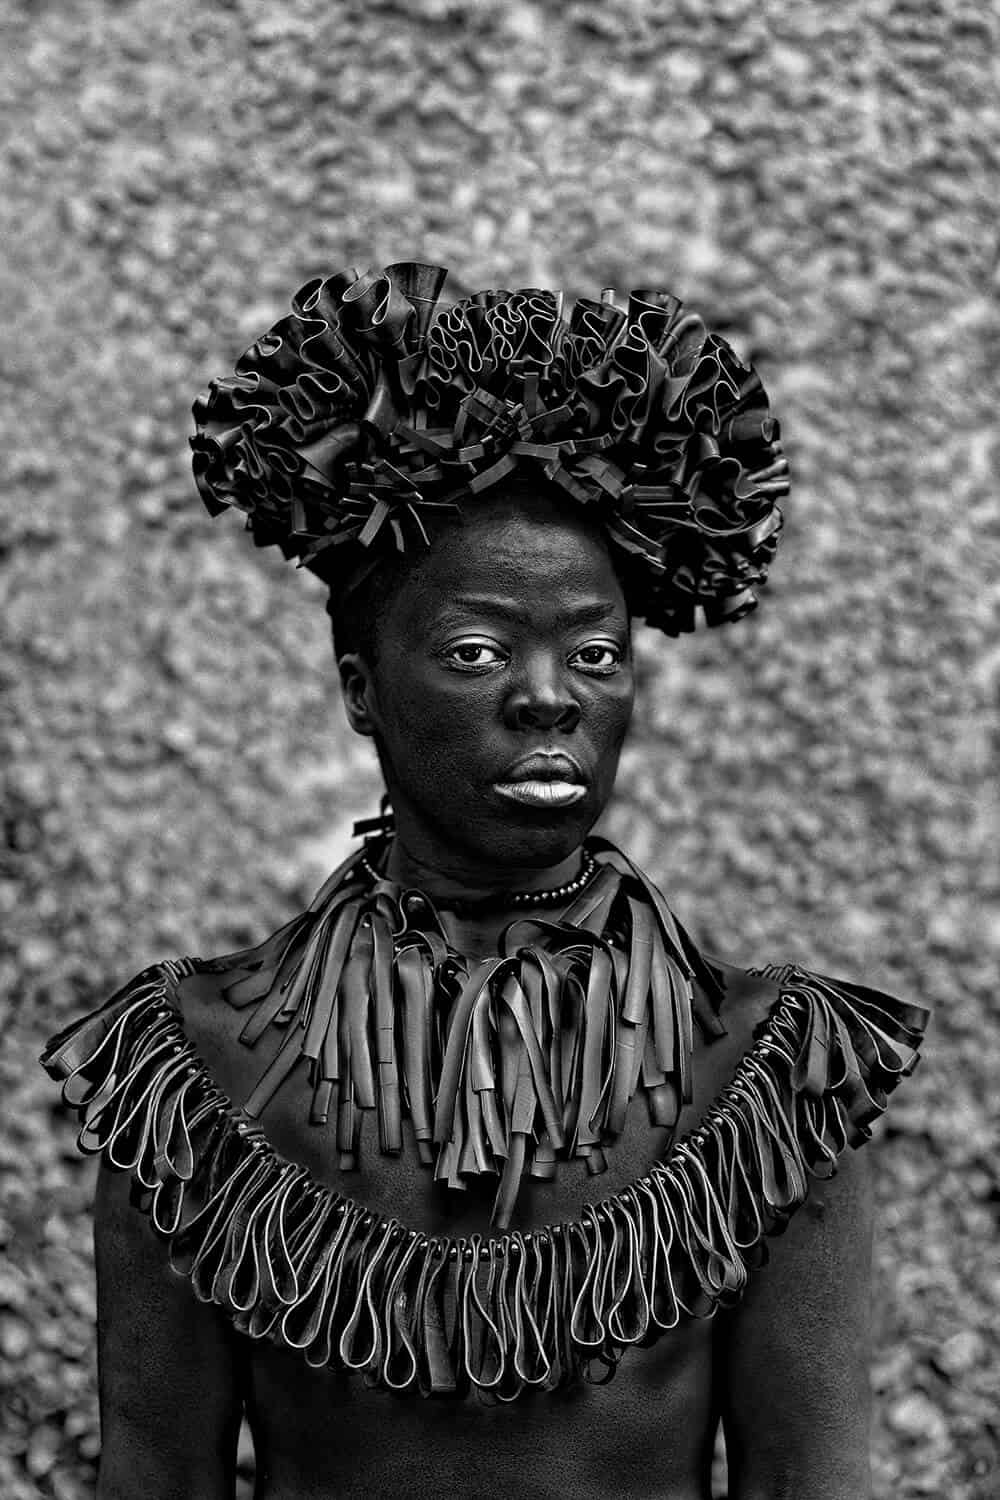 Hlonipha, Cassilhaus, Chapel Hill, North Carolina, 2016. © Zanele Muholi. Courtesy of Stevenson, Cape Town/Johannesburg.